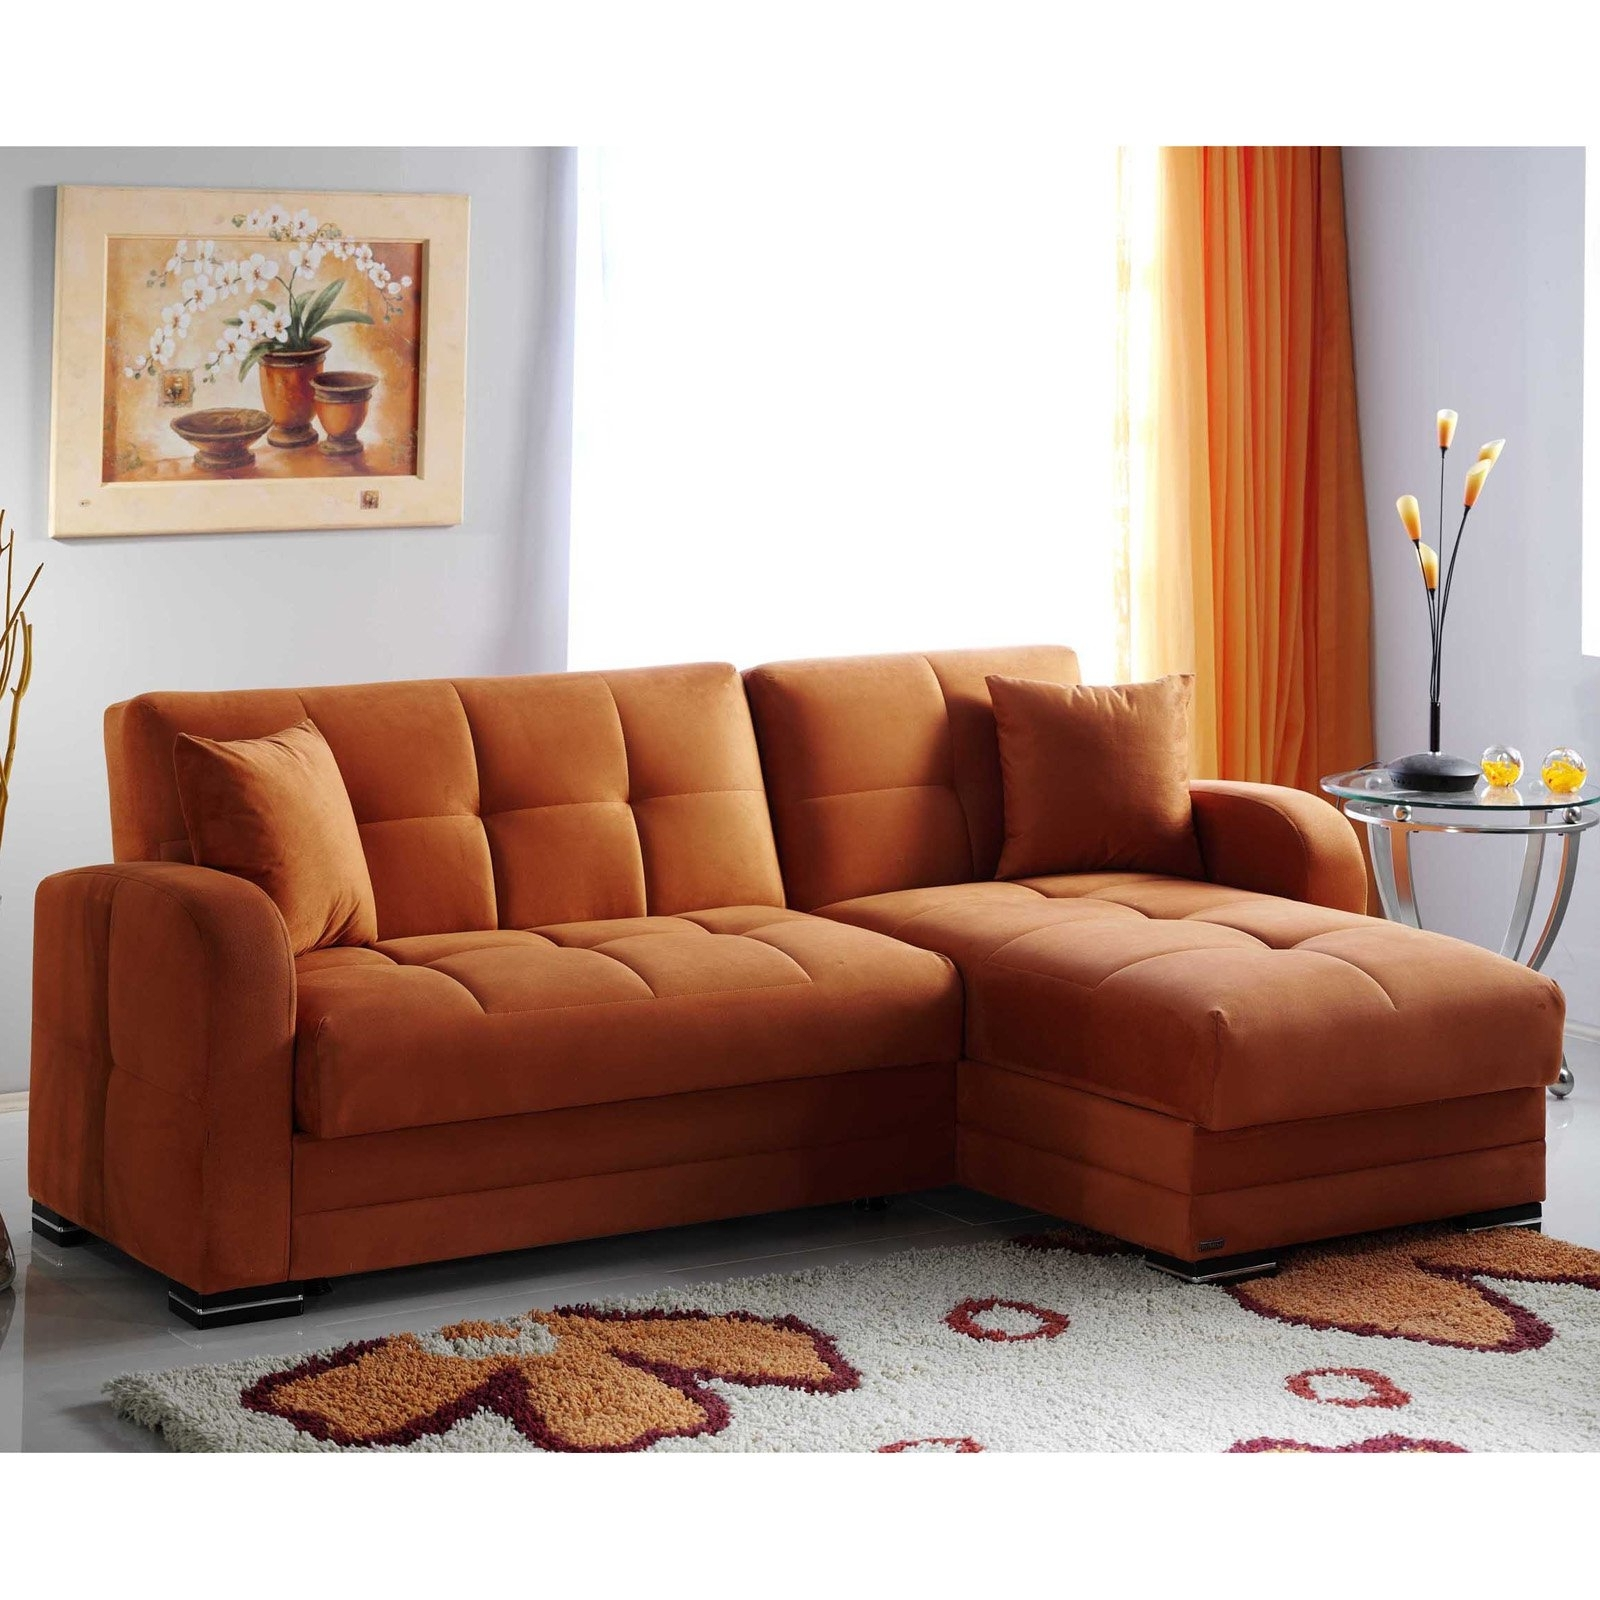 Preferred Queens Ny Sectional Sofas Throughout Kubo Sectional Sofa (View 7 of 15)